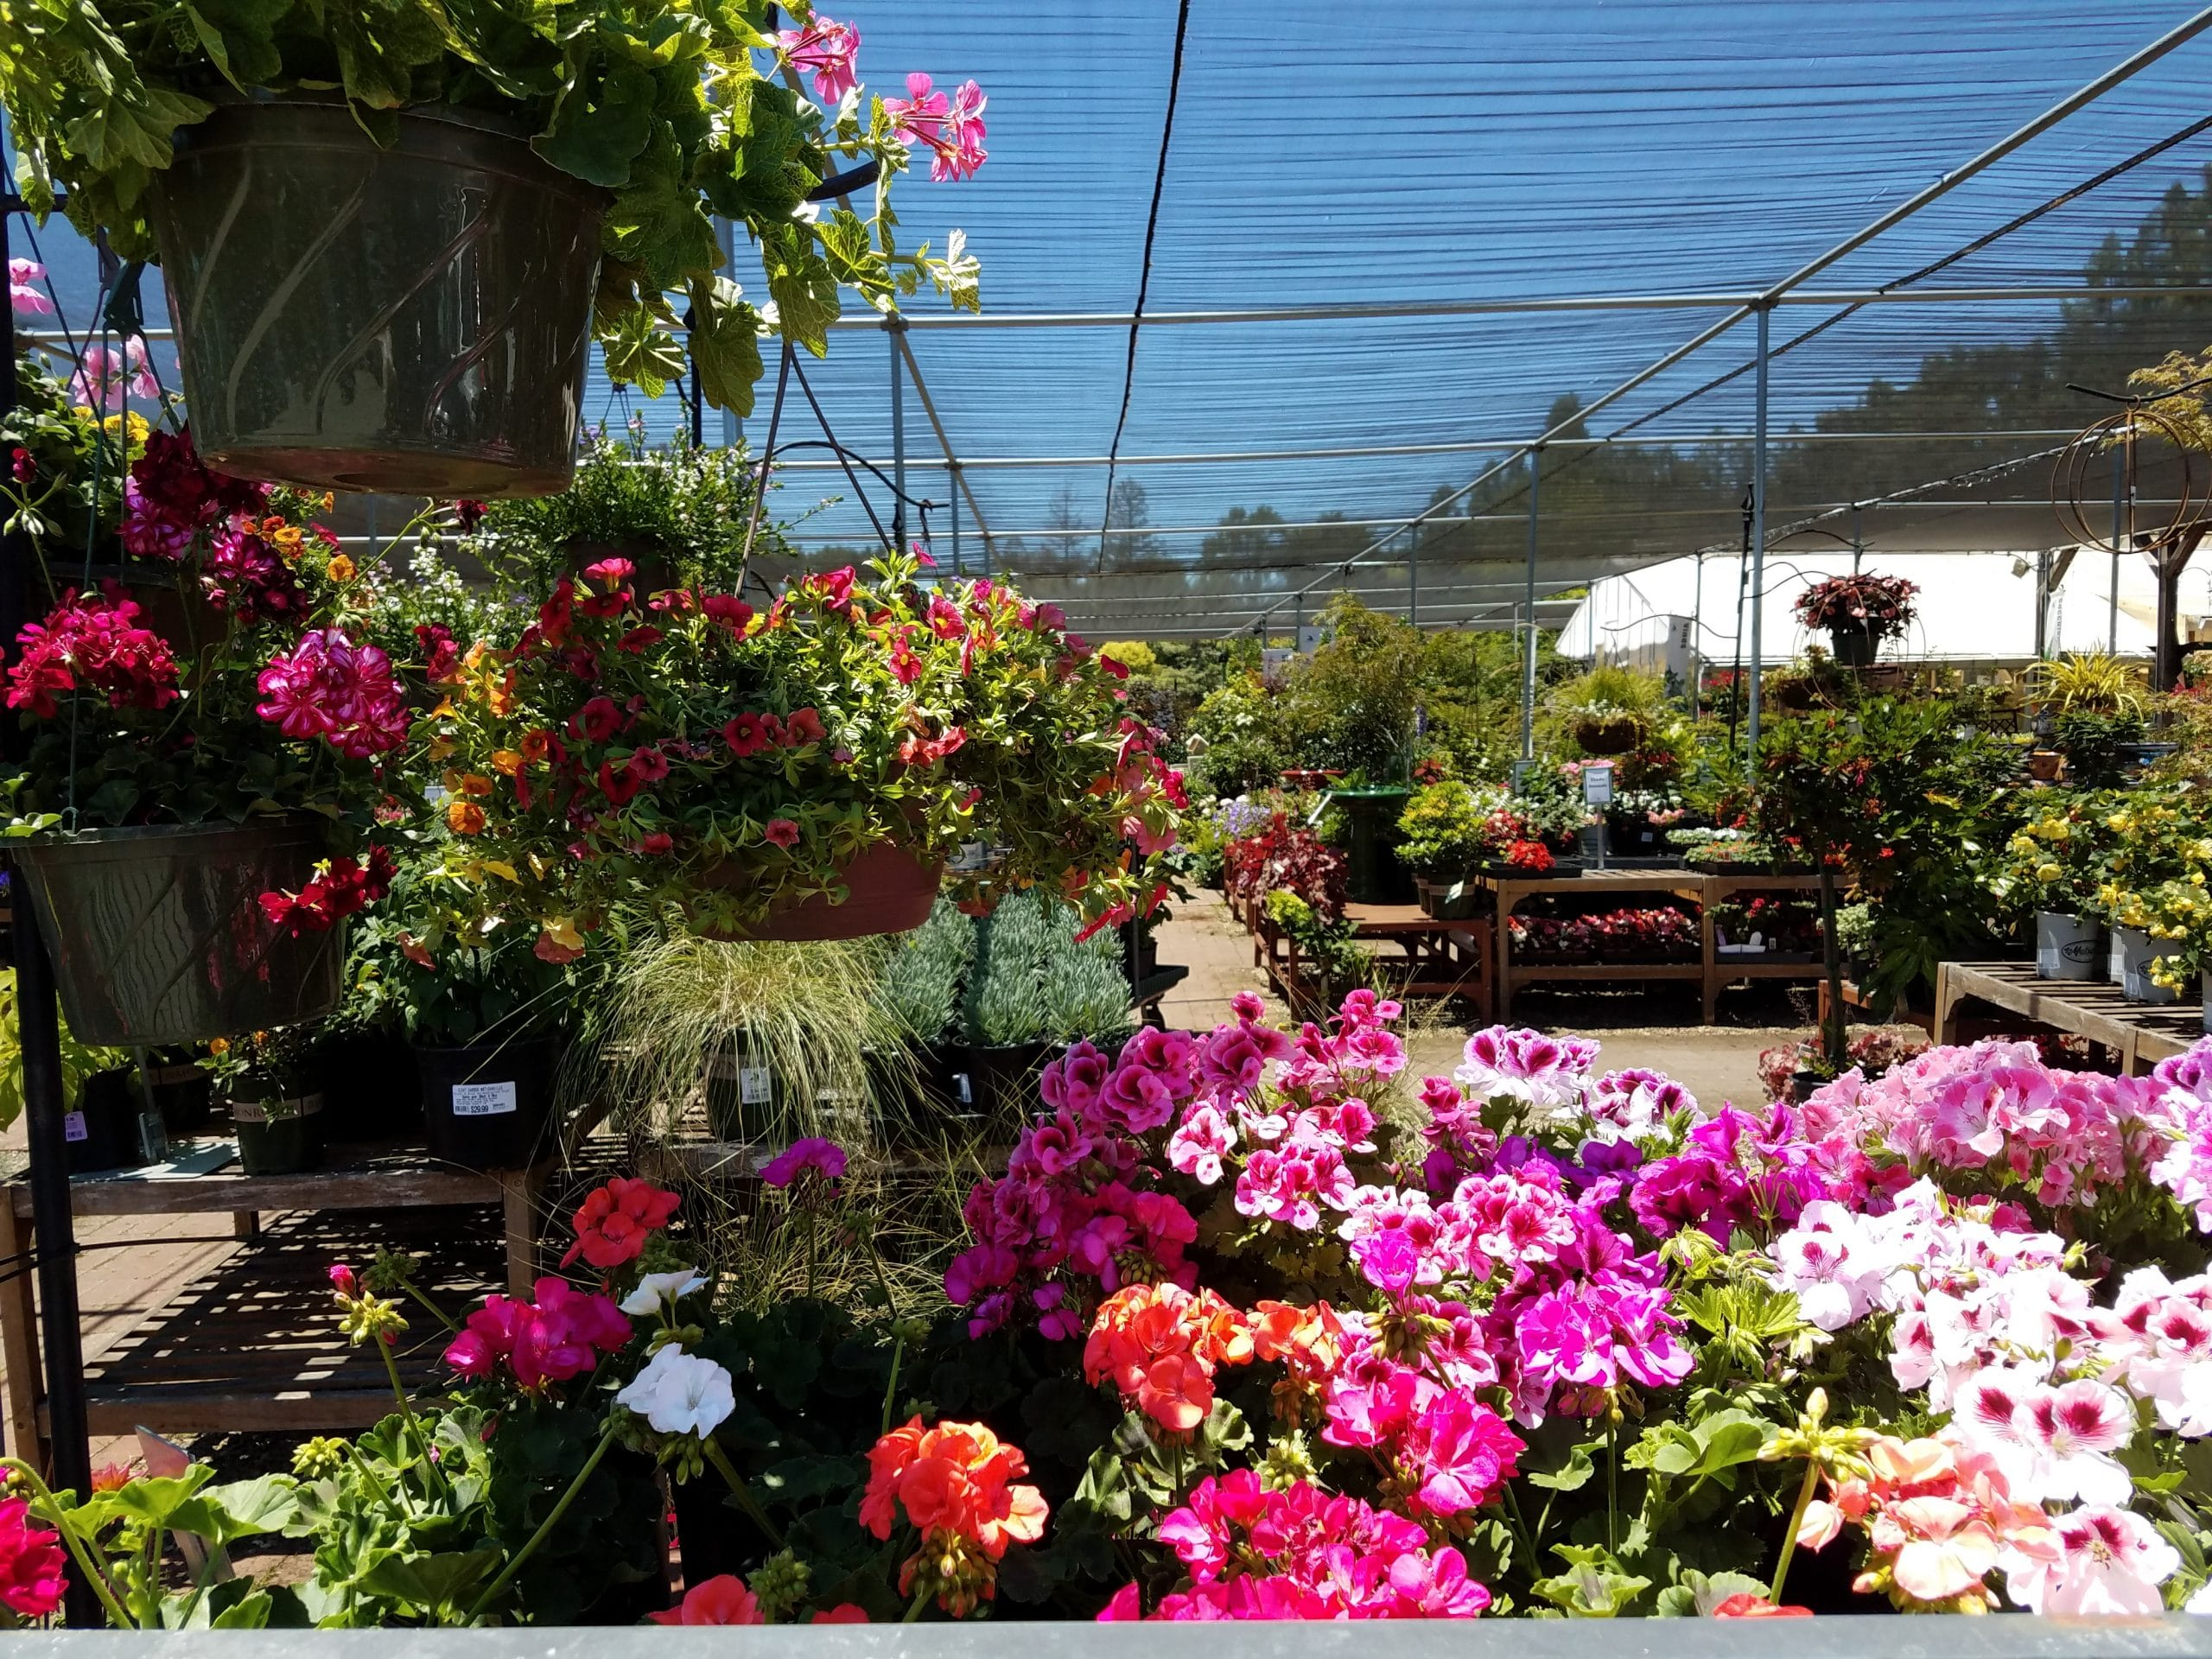 Hanging Baskets And Geraniums For The Sale Diablo Rd Sloat Garden Center